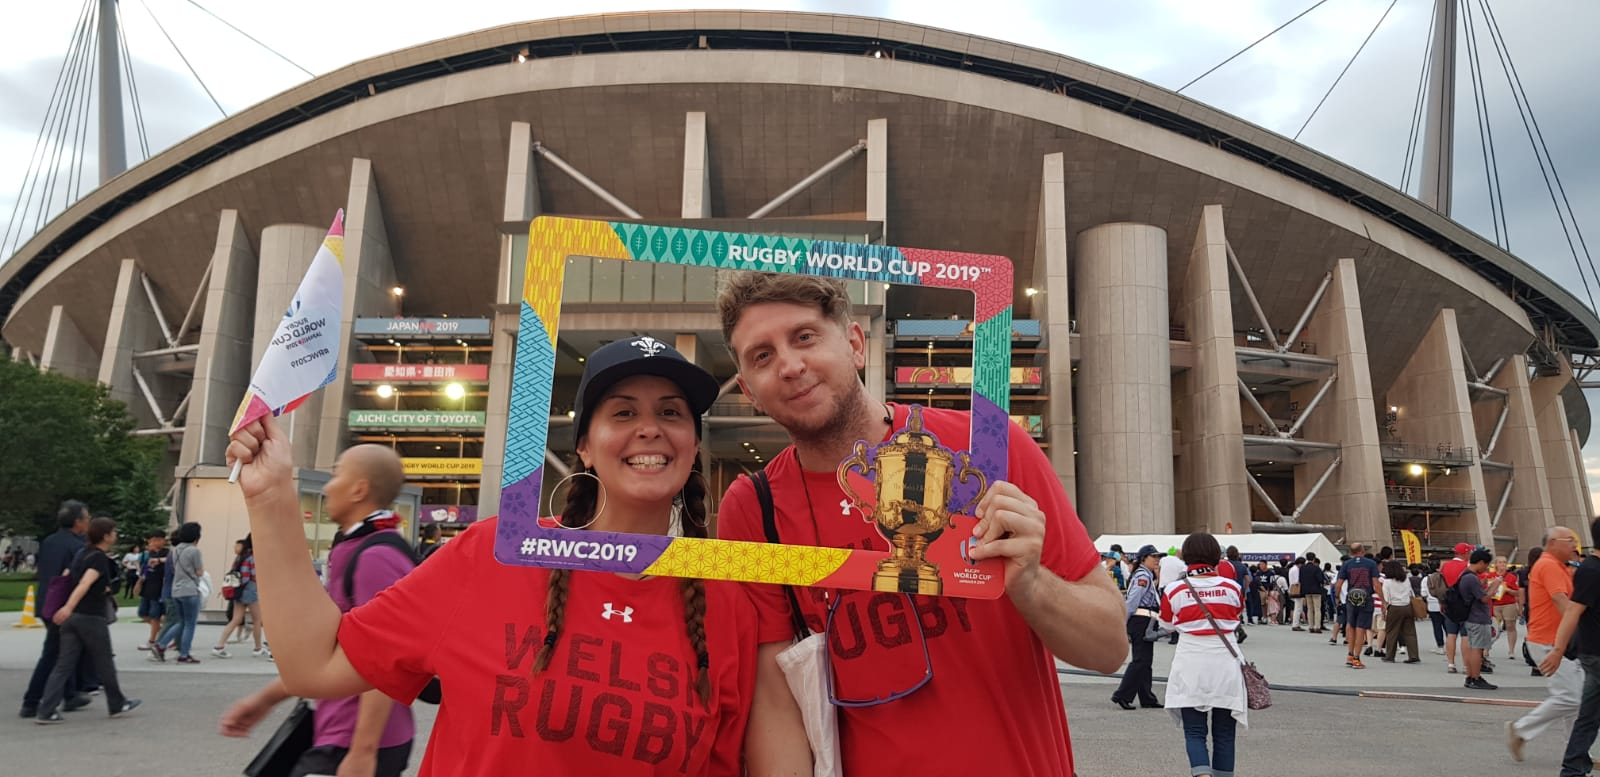 Ben and Tanya's epic journey to RWC